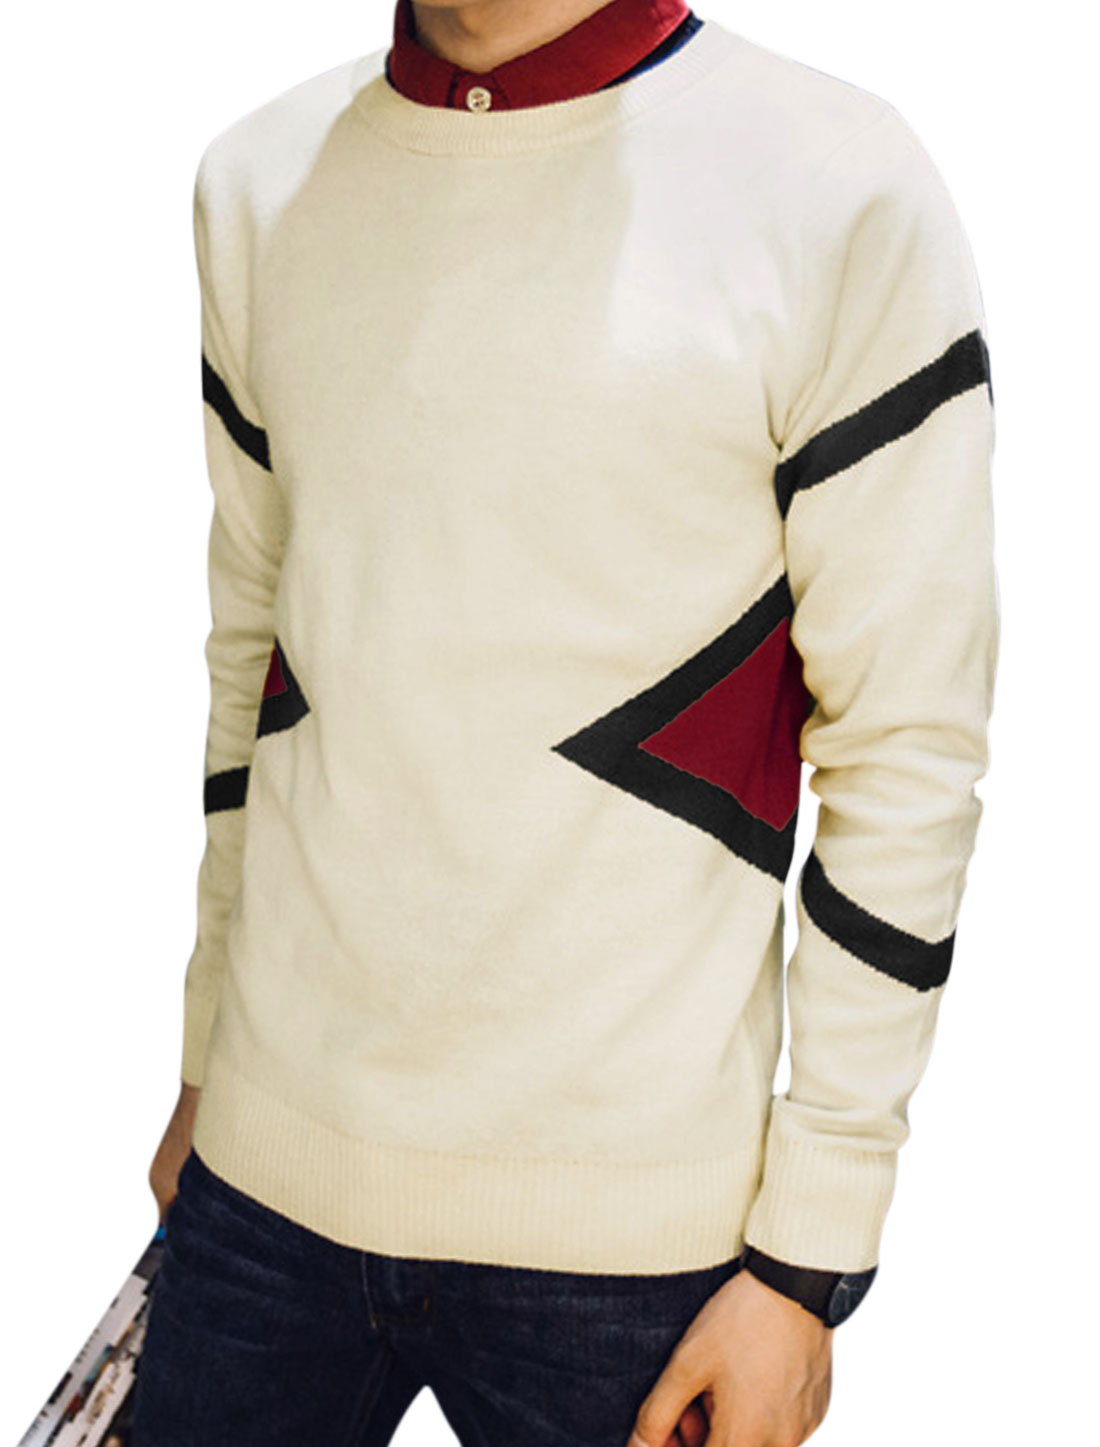 Men Long Sleeve Round Neck Slim Fit Knit Shirts Pullovers Beige M